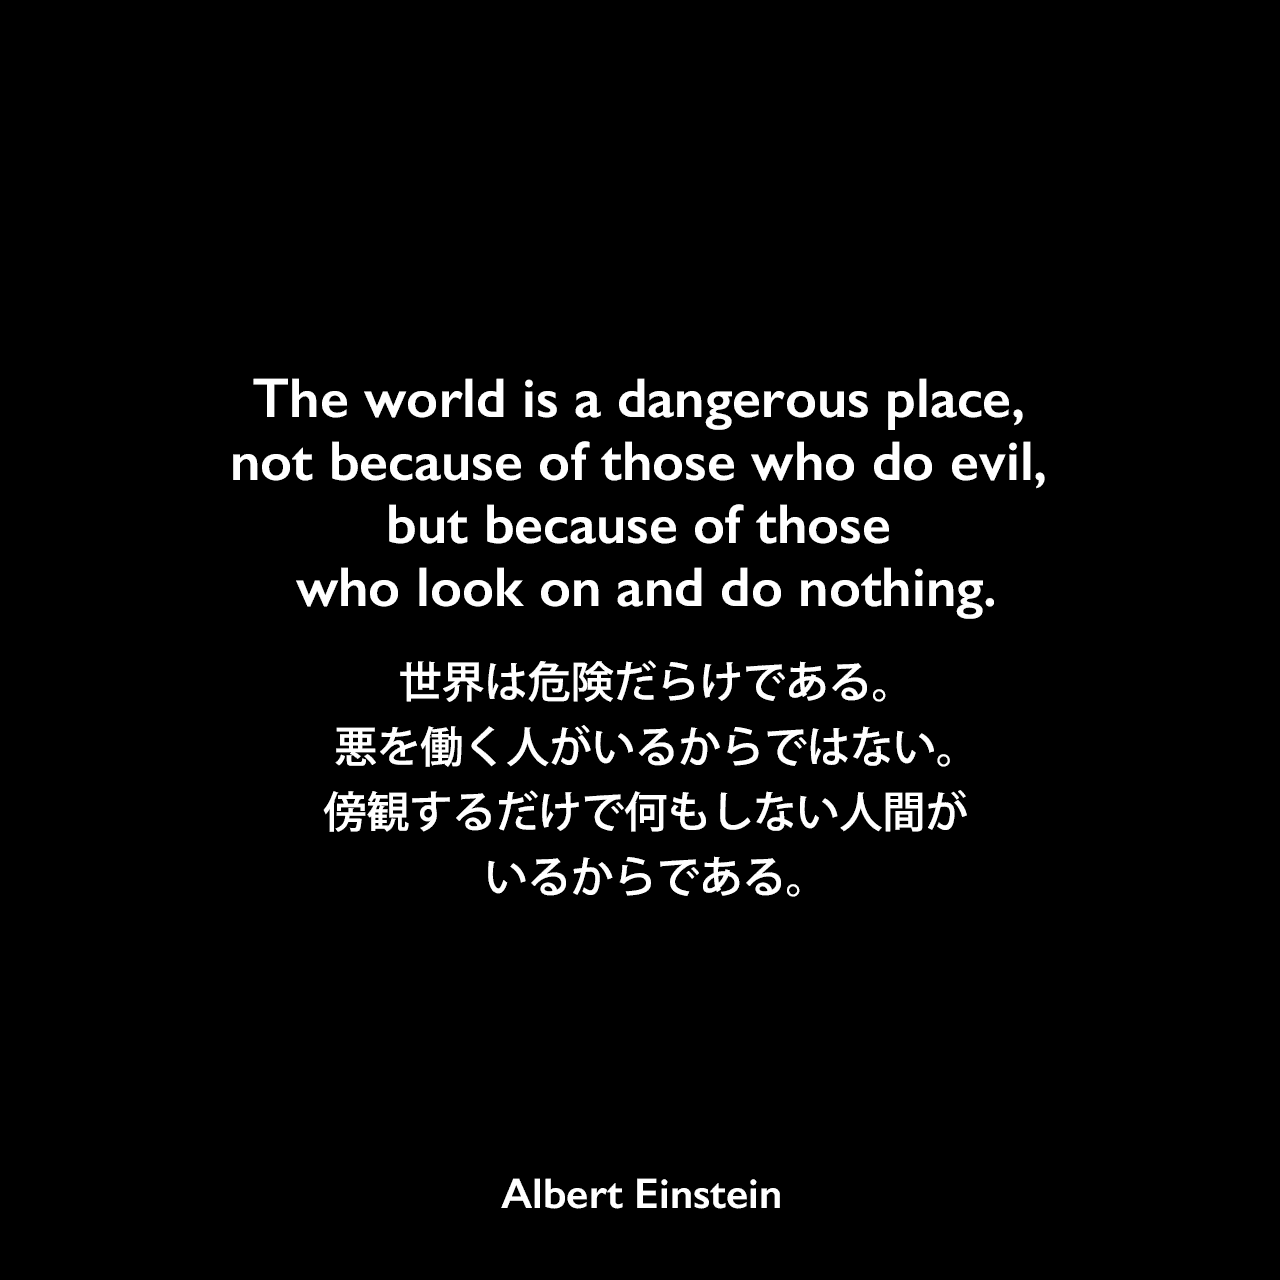 The world is a dangerous place, not because of those who do evil, but because of those who look on and do nothing.世界は危険だらけである。悪を働く人がいるからではない。傍観するだけで何もしない人間がいるからである。- Maureen Stearnsの本「Conscious Courage」(2004年)よりAlbert Einstein